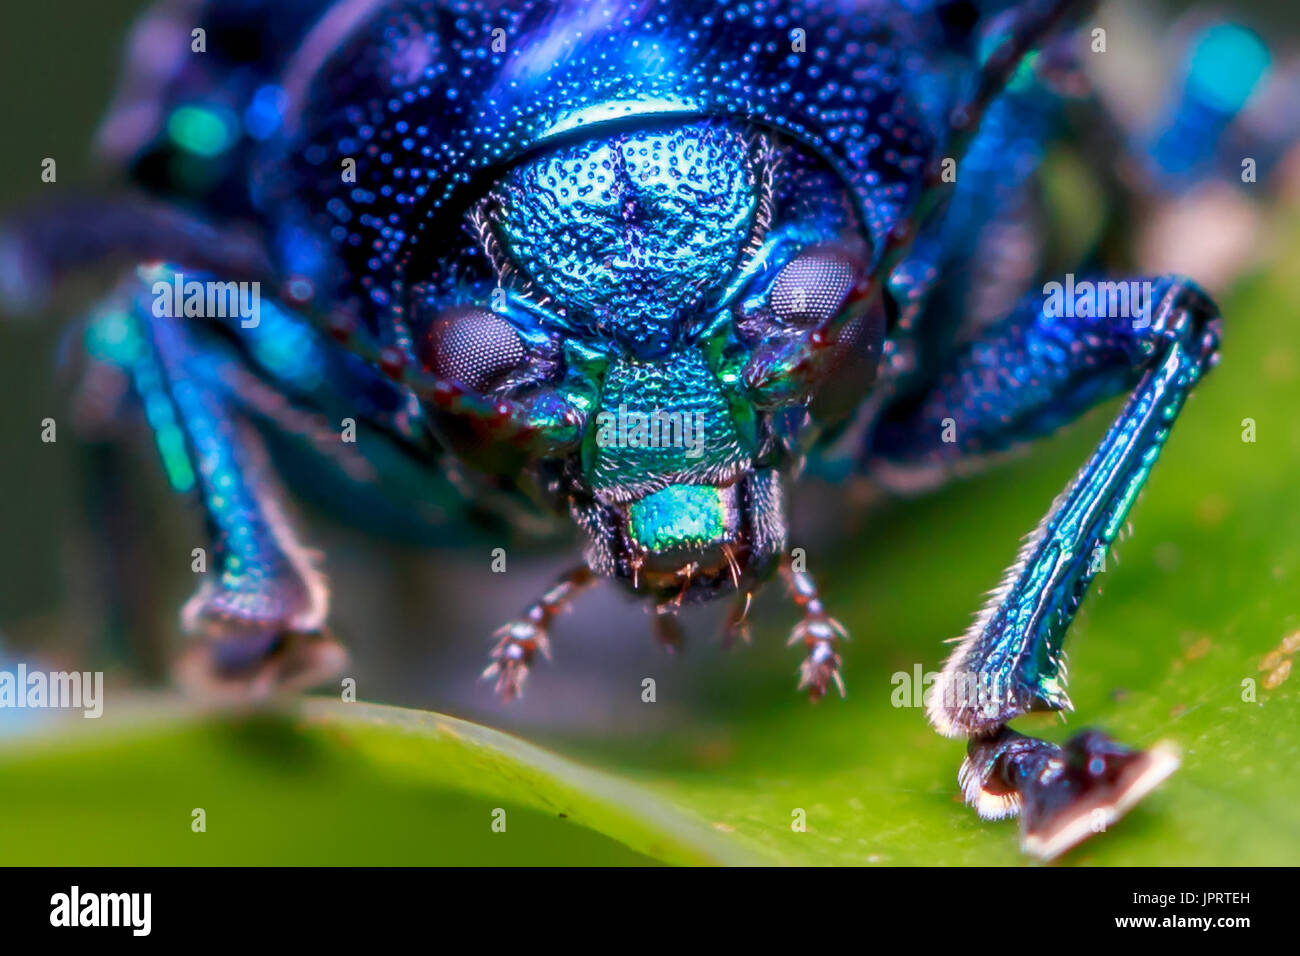 invertebrate - Stock Image